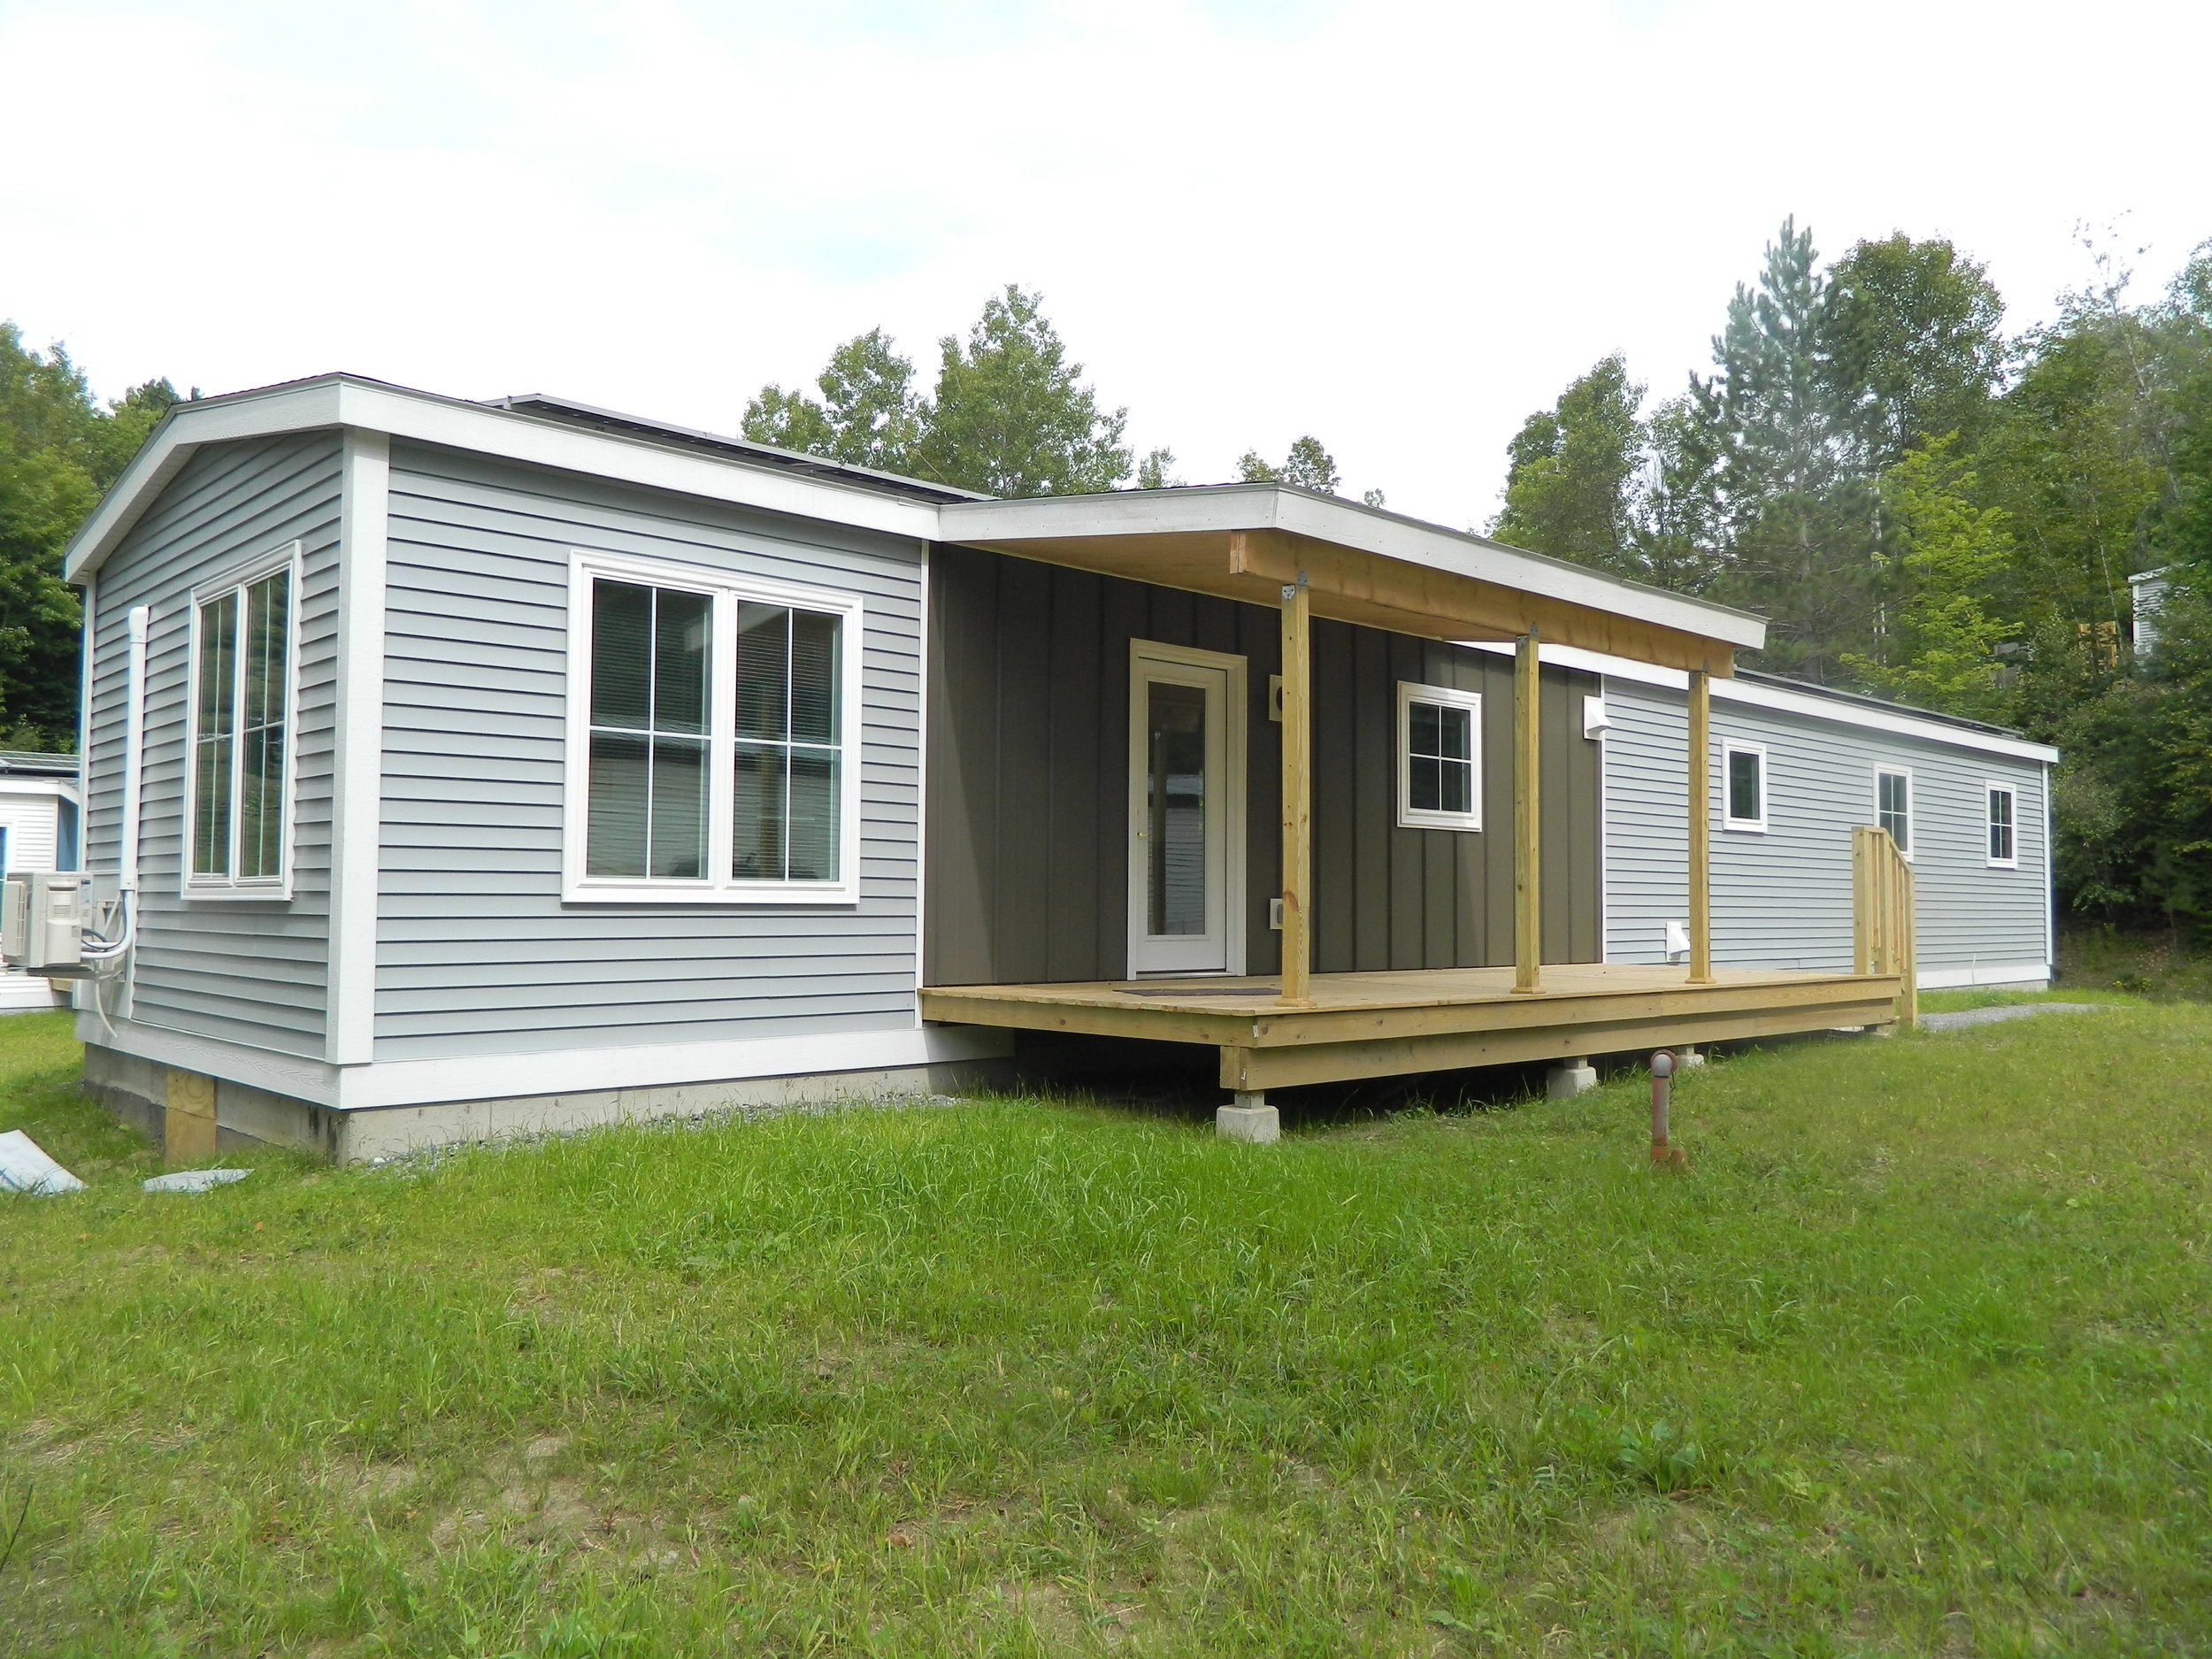 Affordable Housing is Green in Hardwick | Stowe Reporter